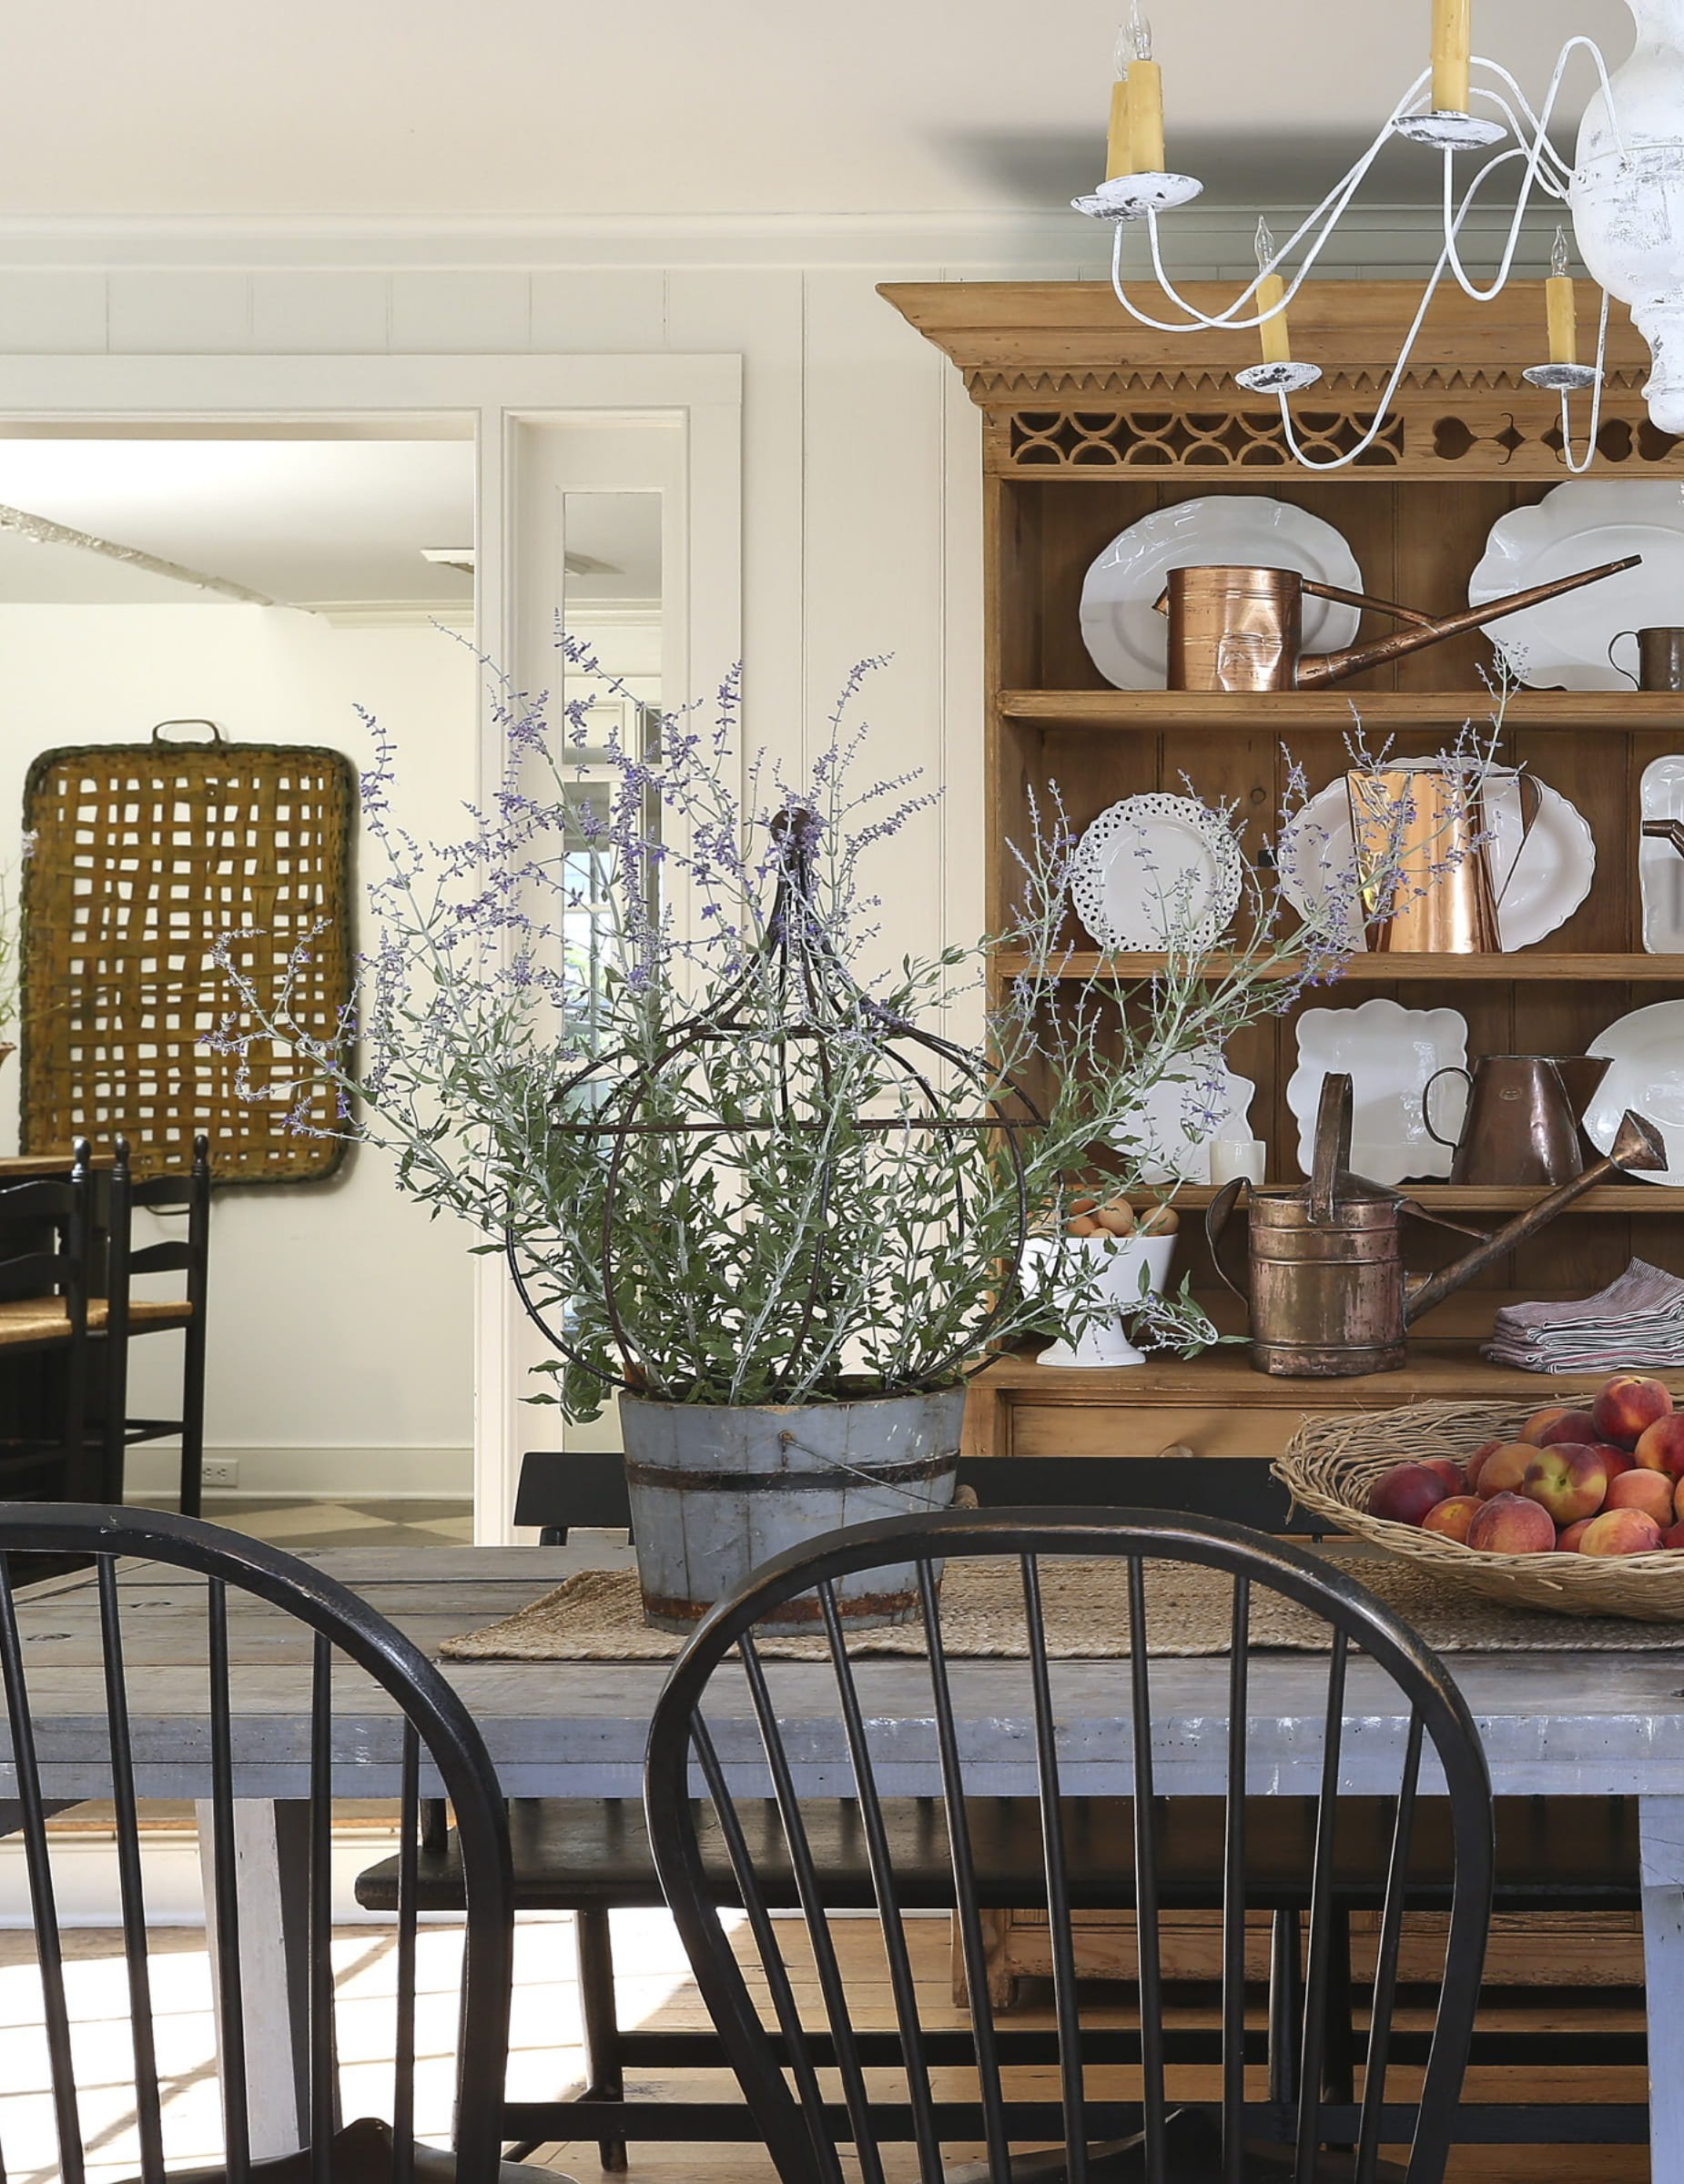 Nora Murphy dining room with beautiful classic decor and country style. #diningroom #countrydiningroom #noramurphy #farmhousestyle #farmhousediningroom #rusticdecor